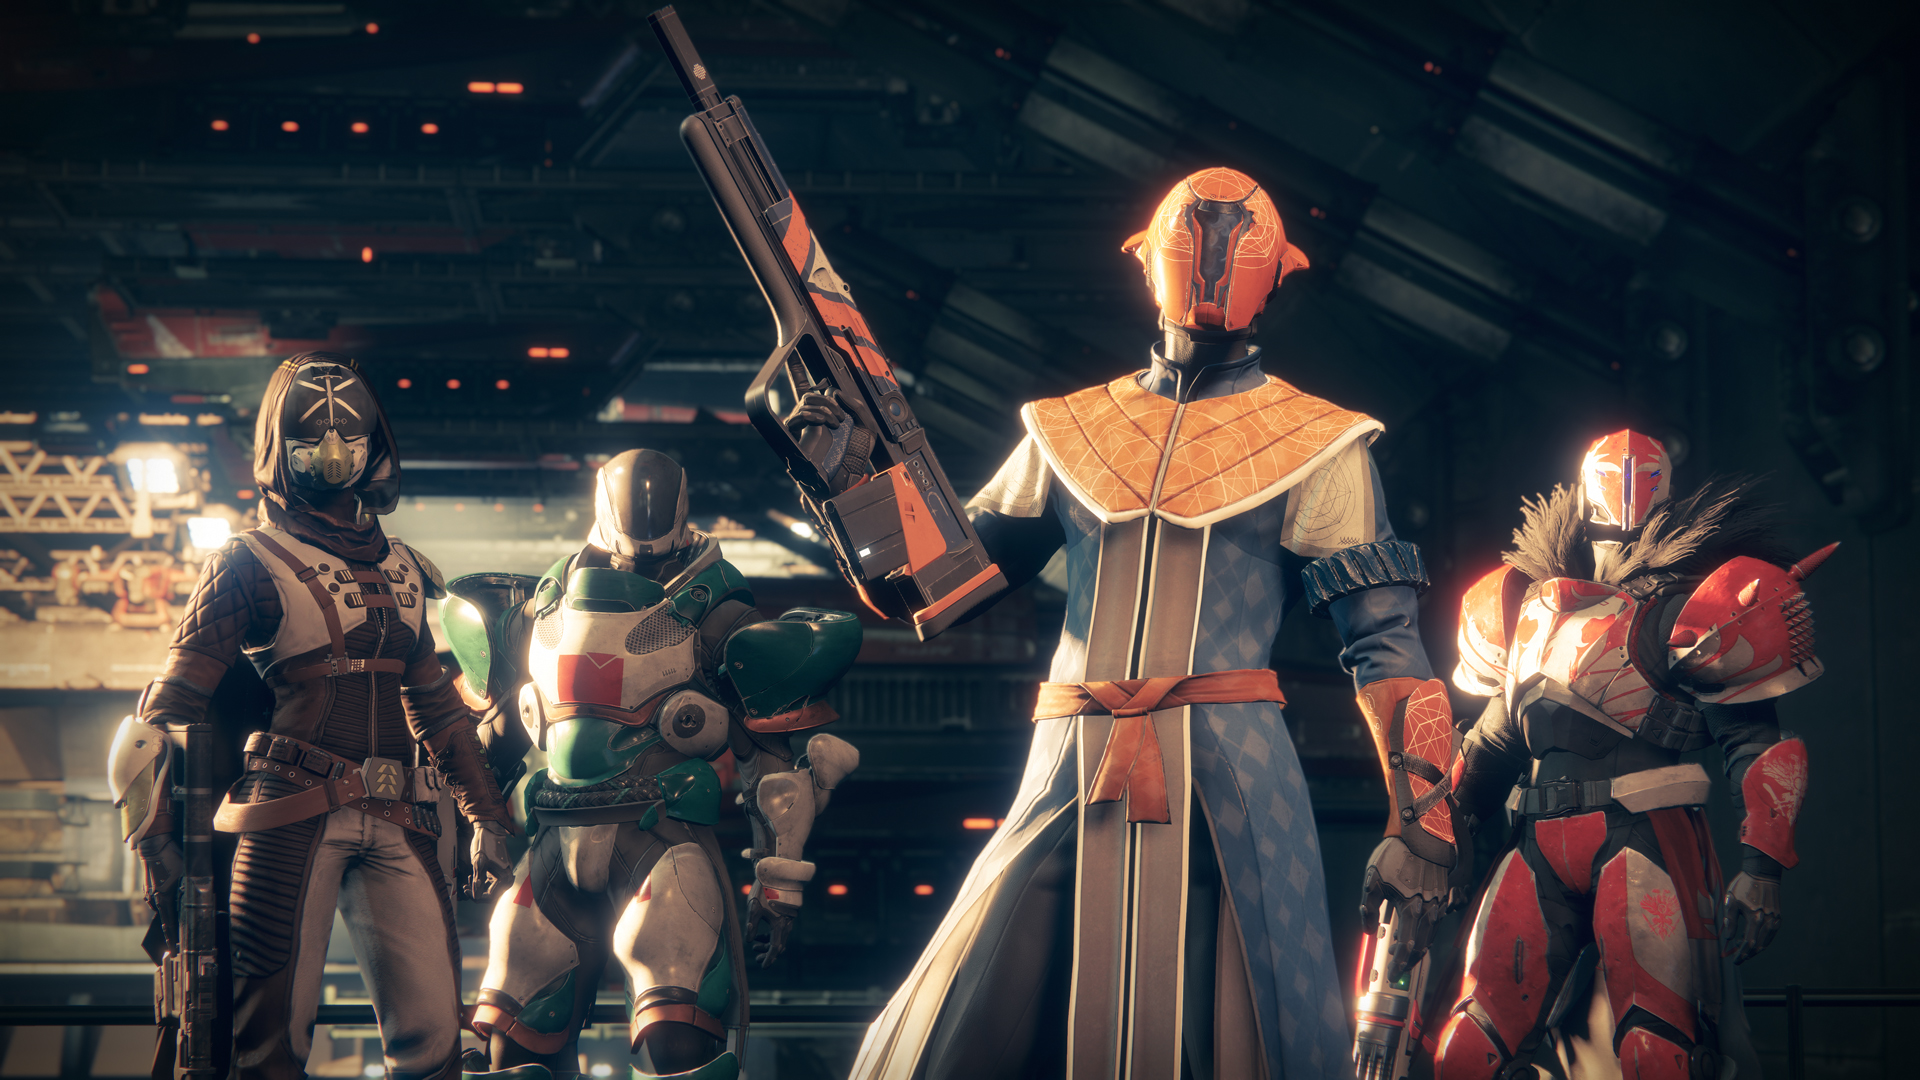 A screenshot of four Guardian warriors standing at ease, ready for a fight.